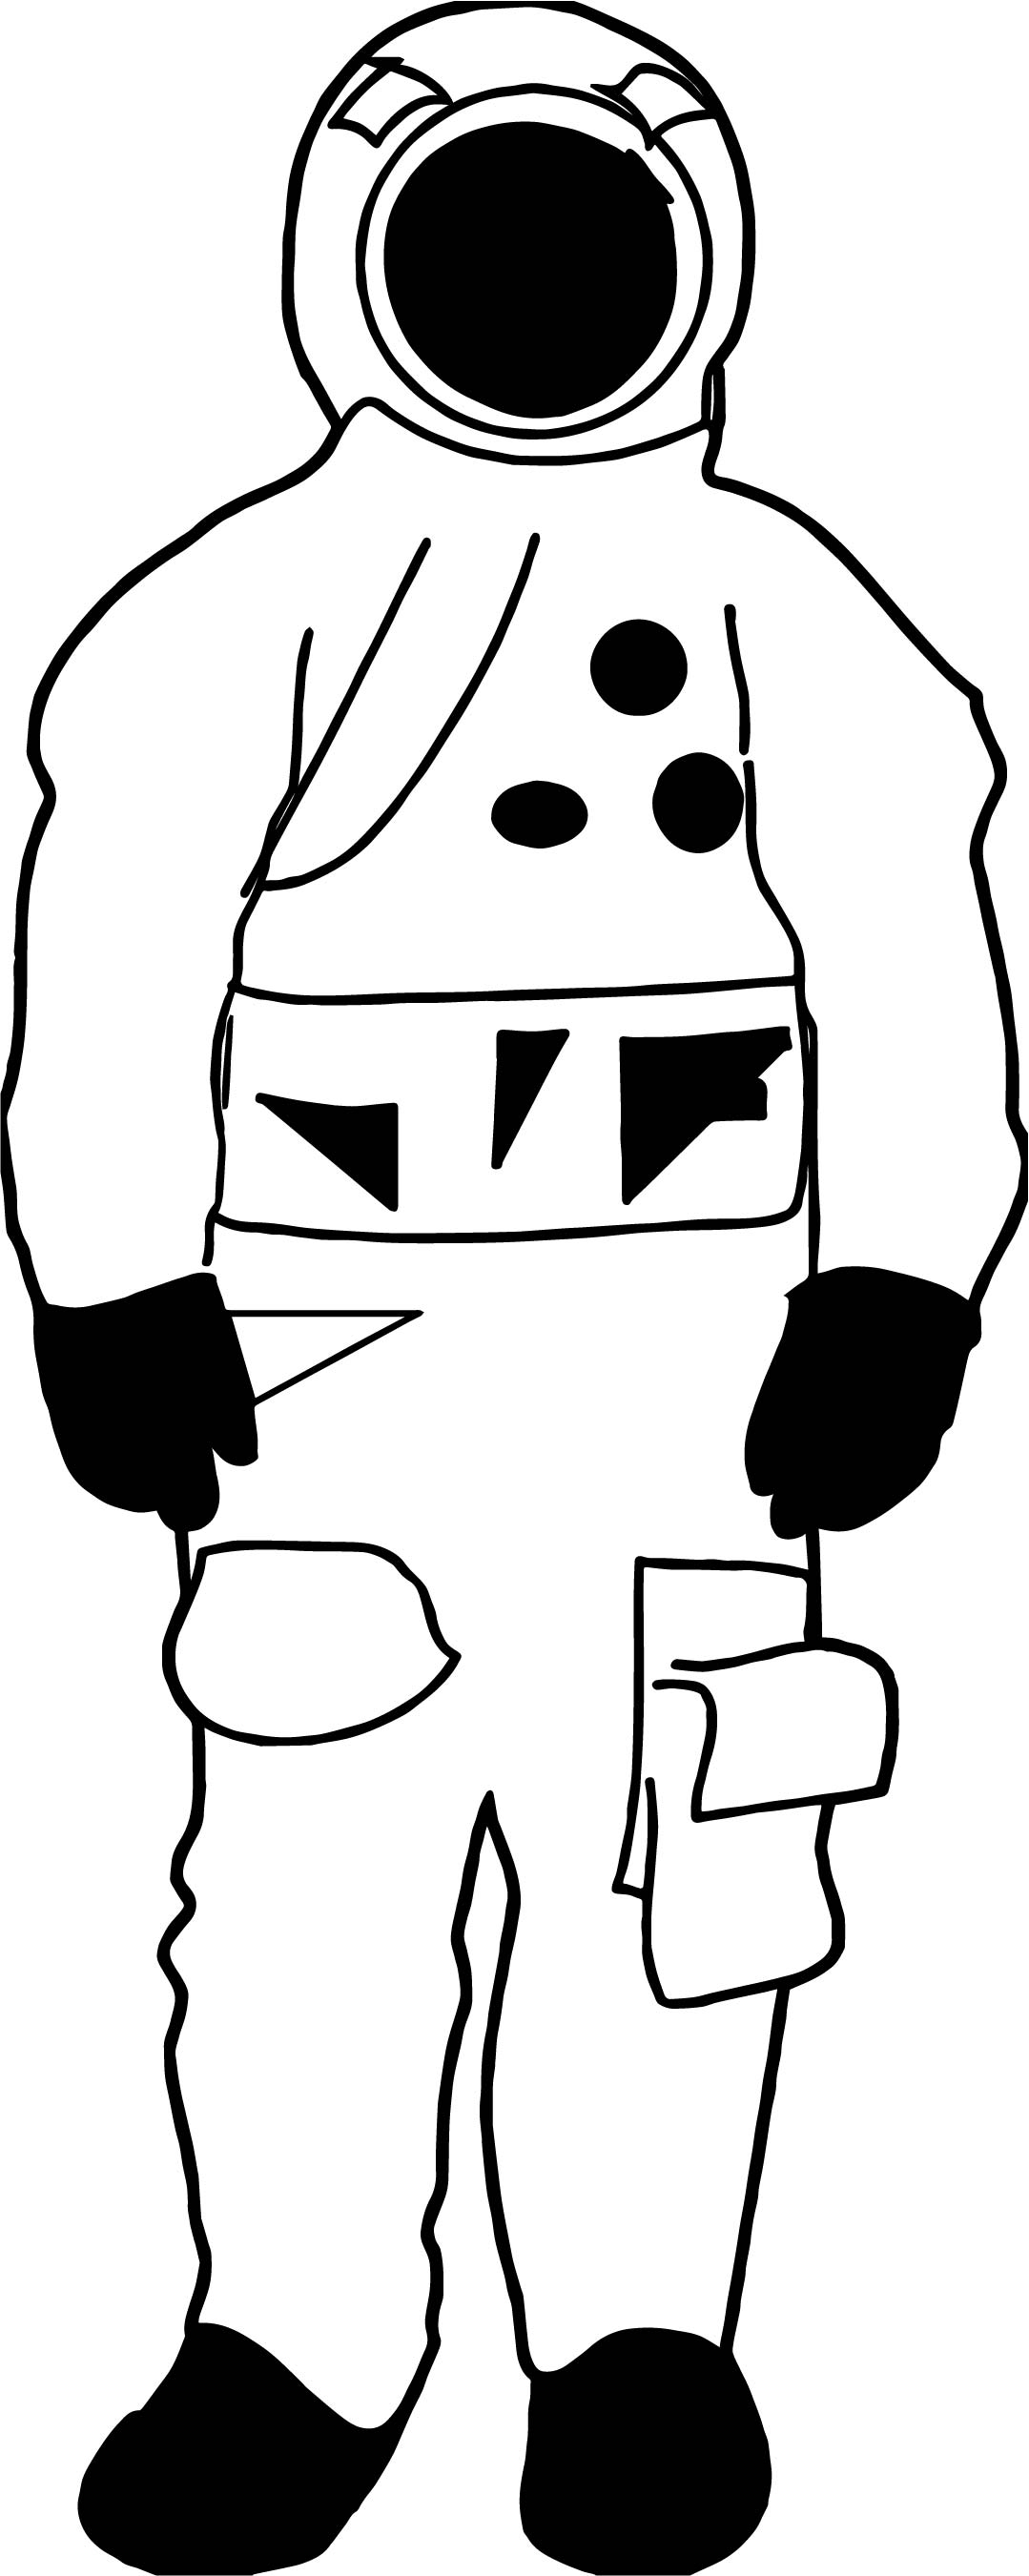 Astronaut Black Man Coloring Page